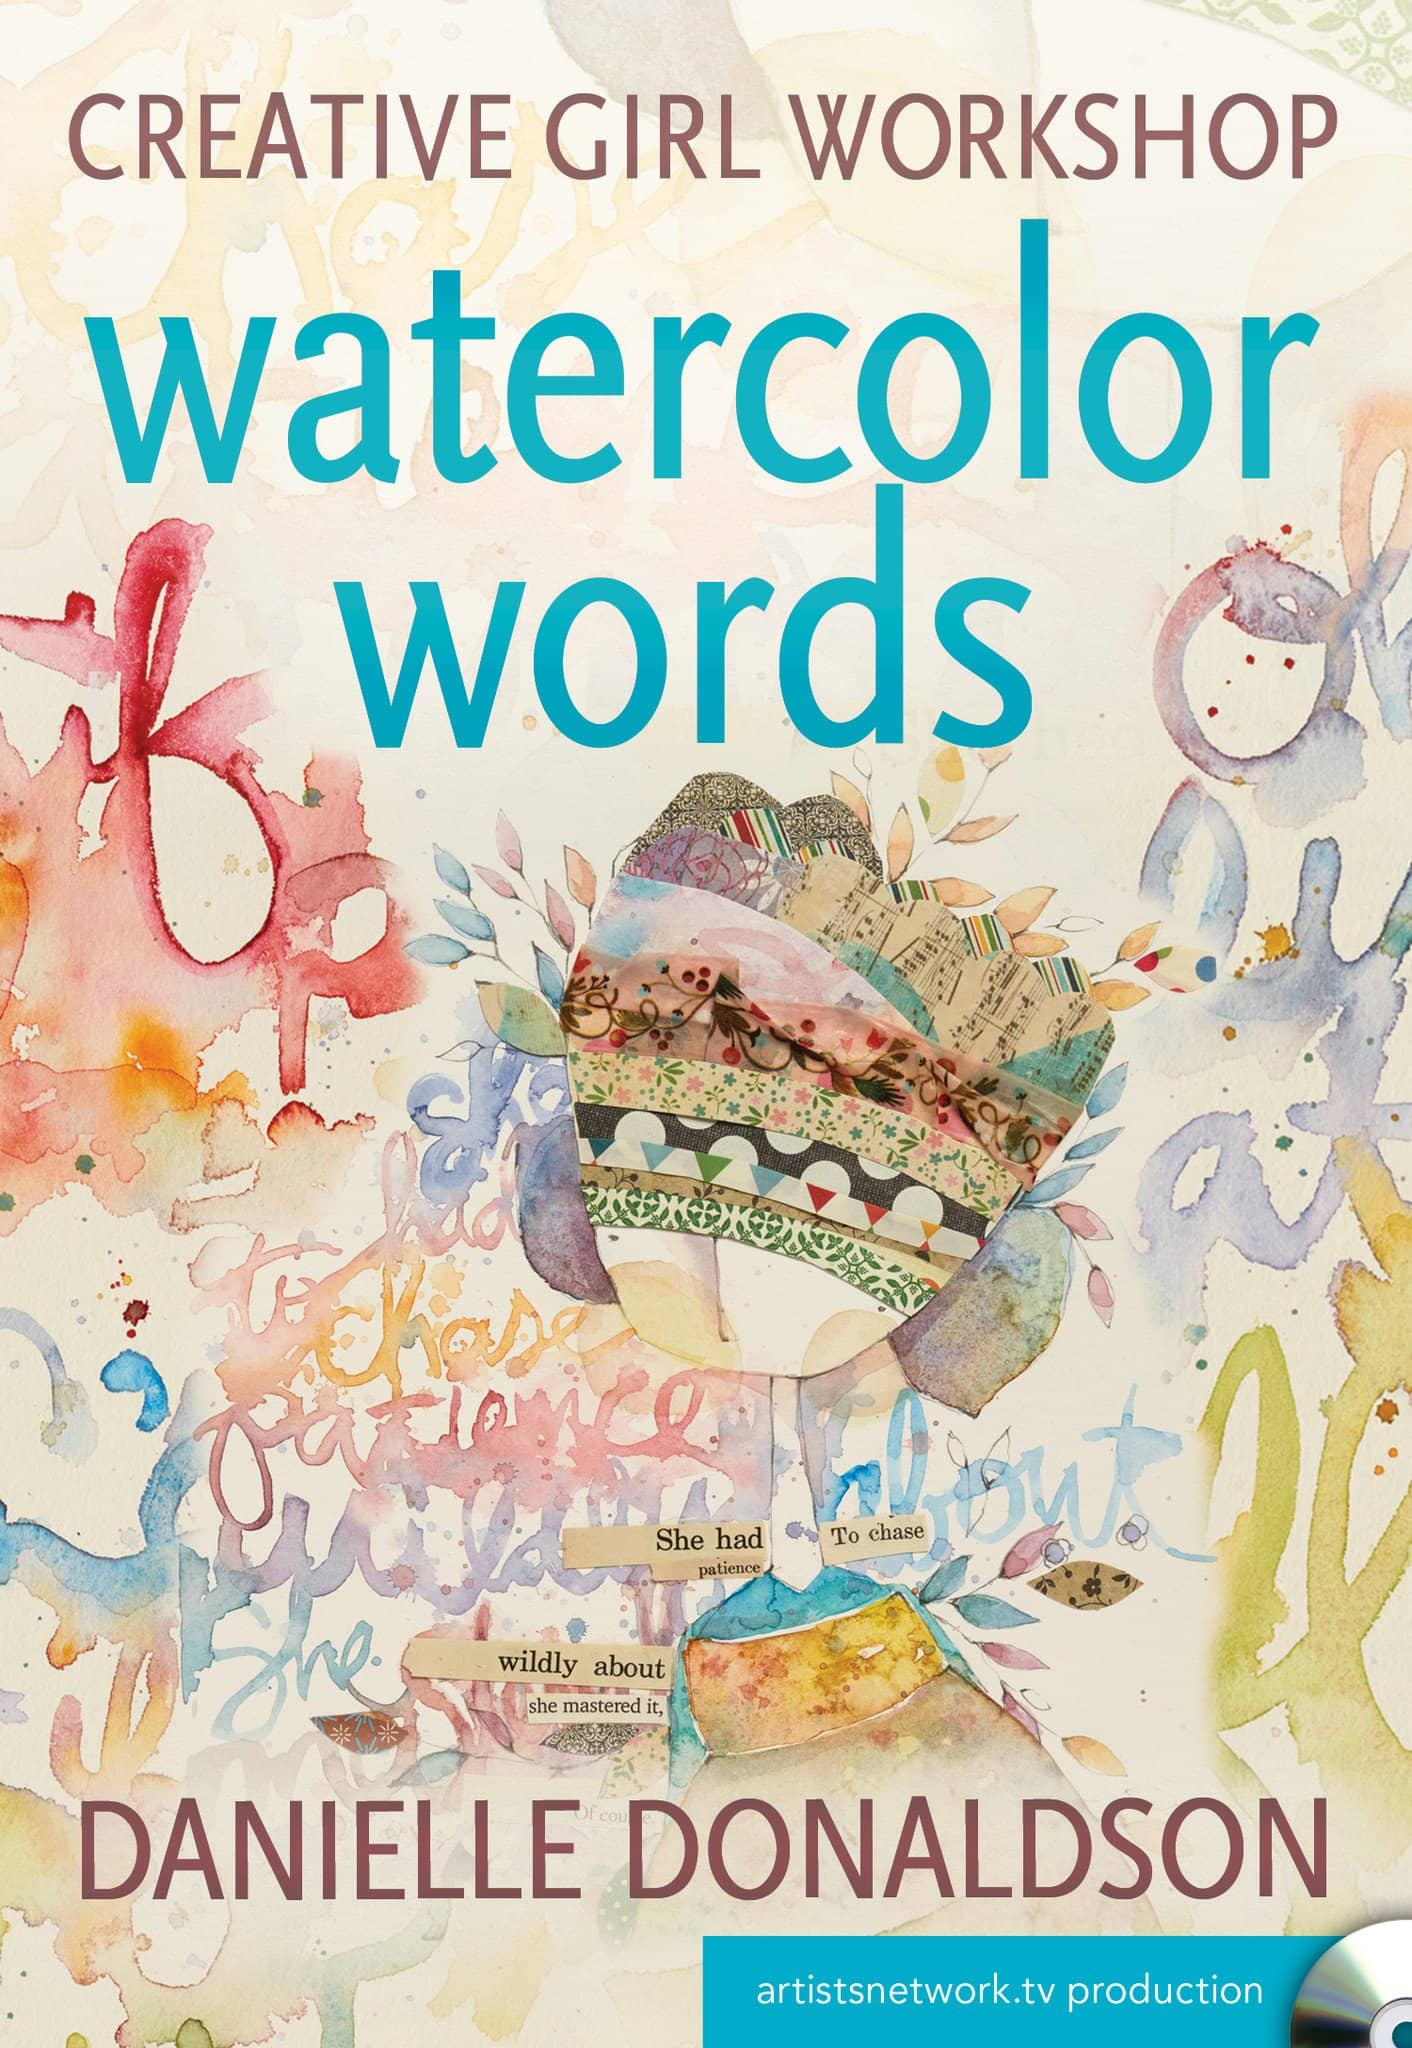 Creative Girl Workshop:  Watercolor Words with Danielle Donaldson